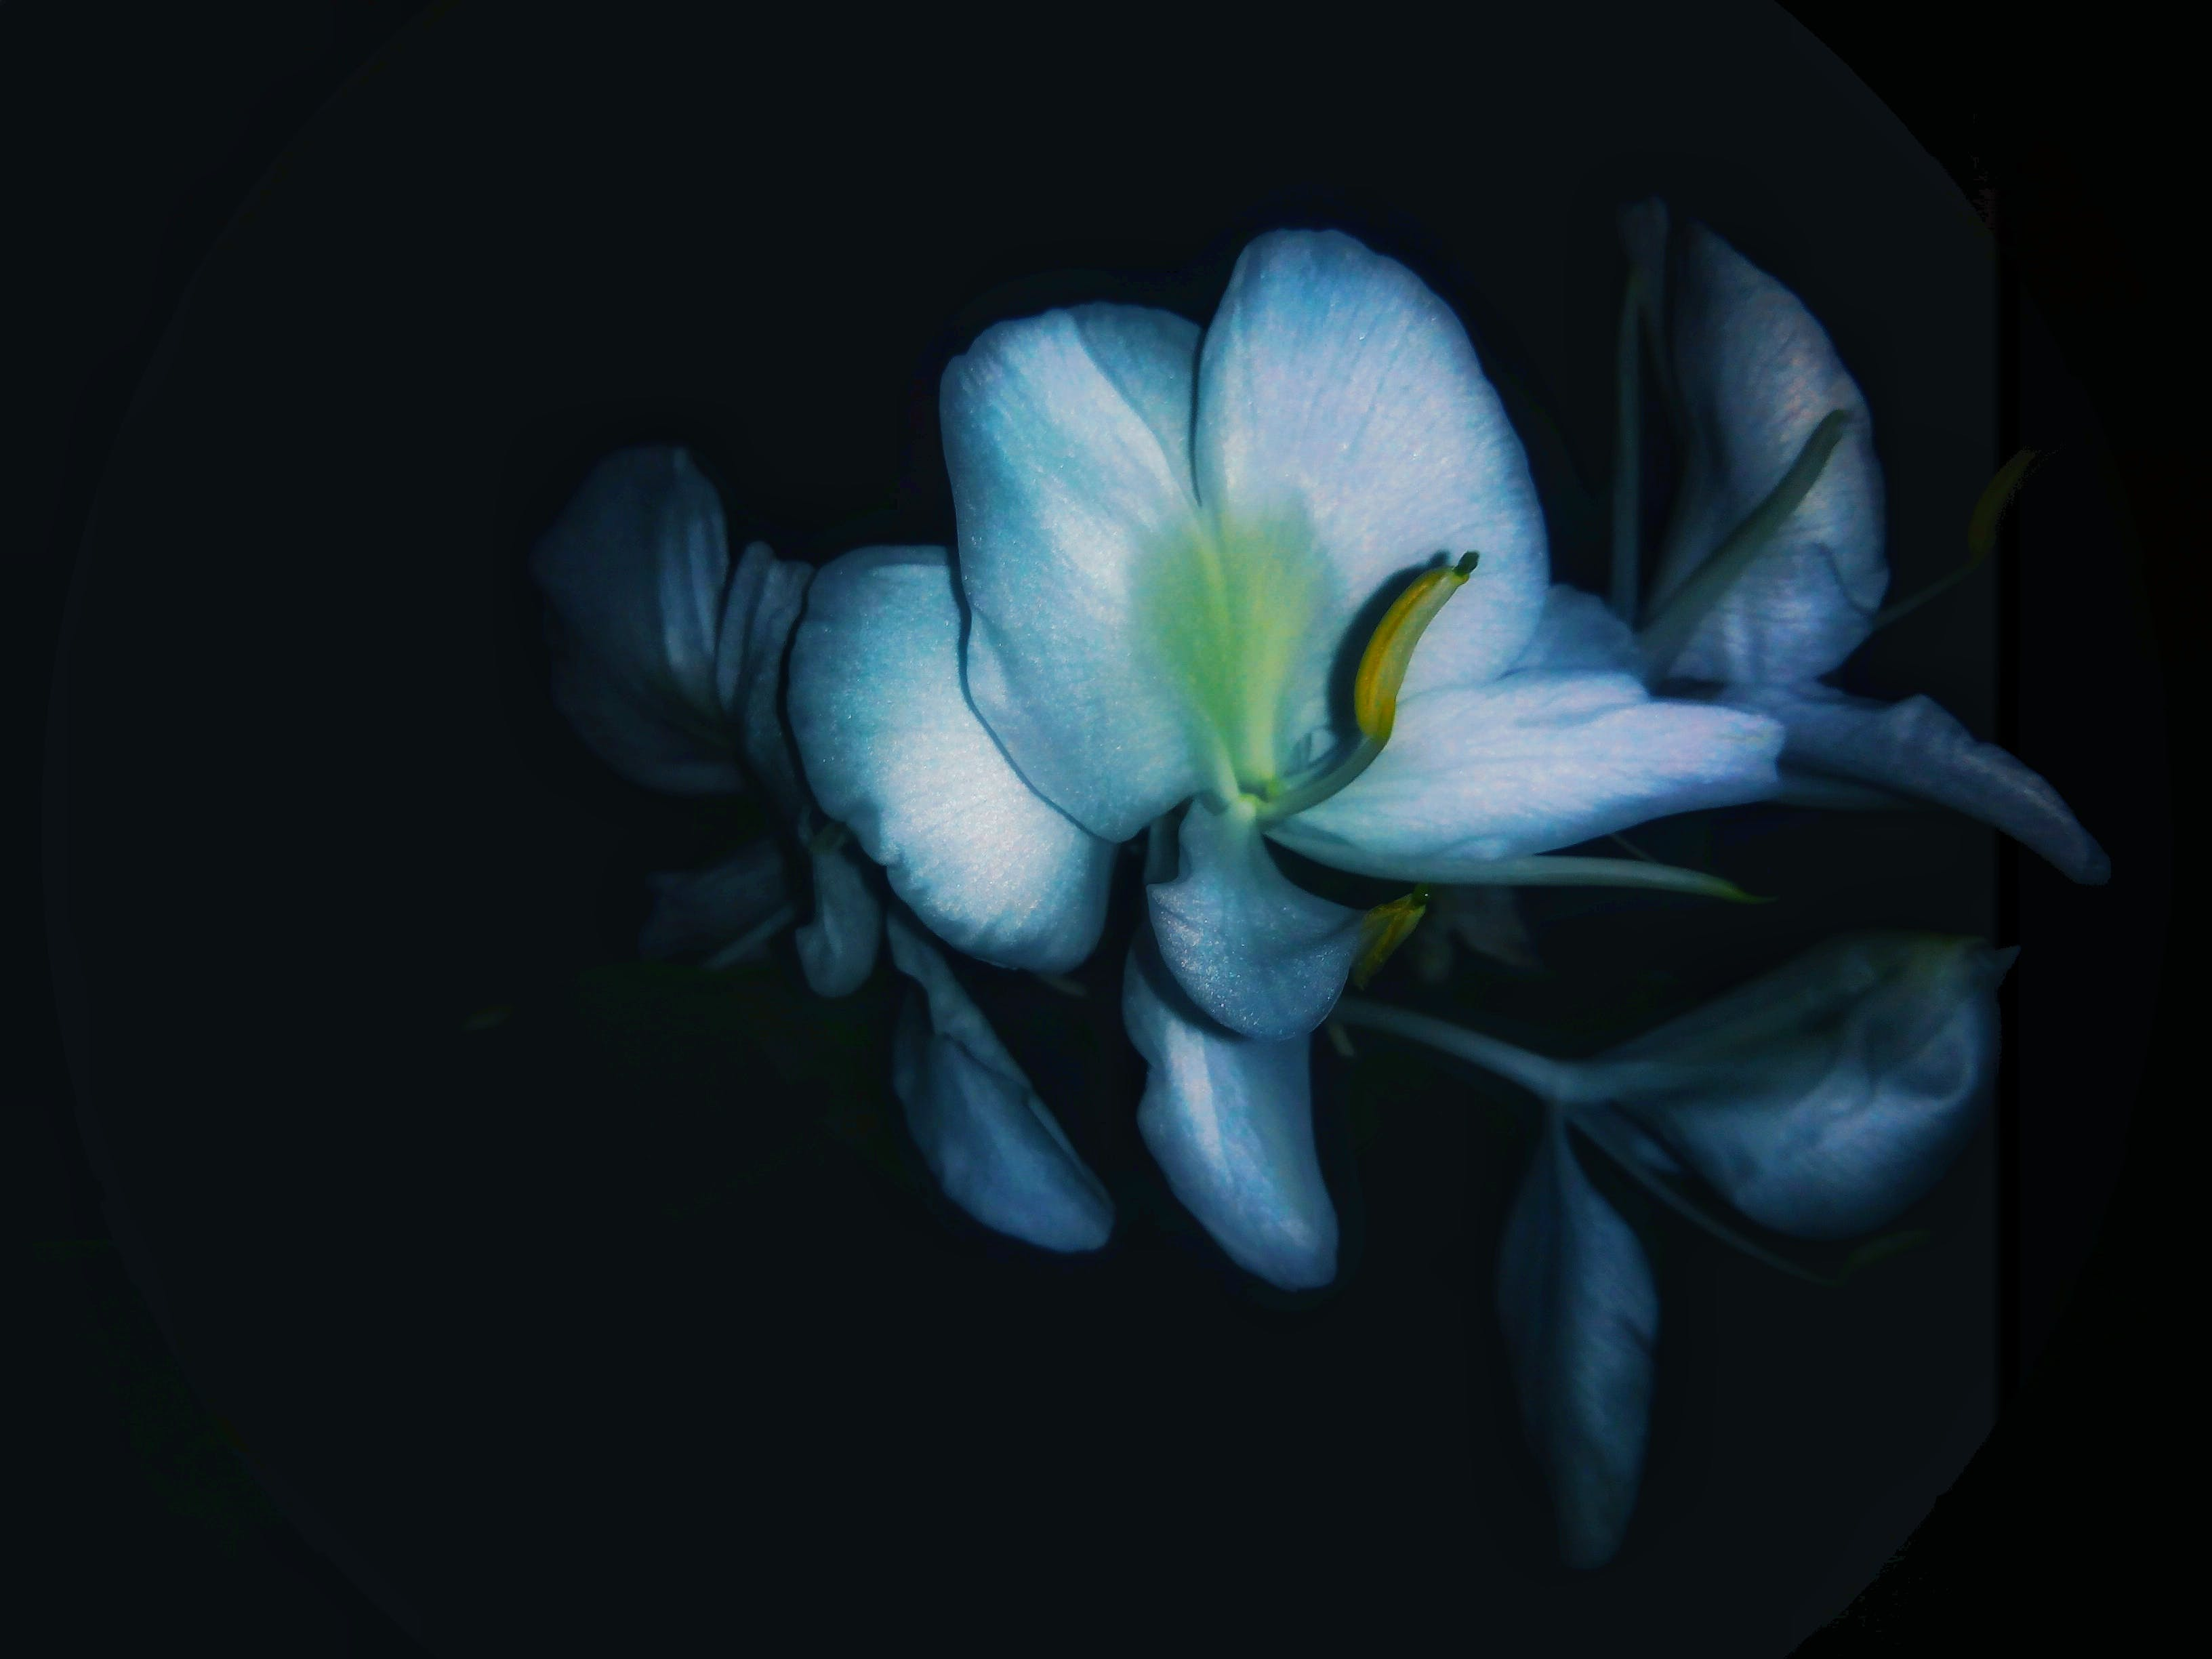 Free stock photo of Blue white petals of night